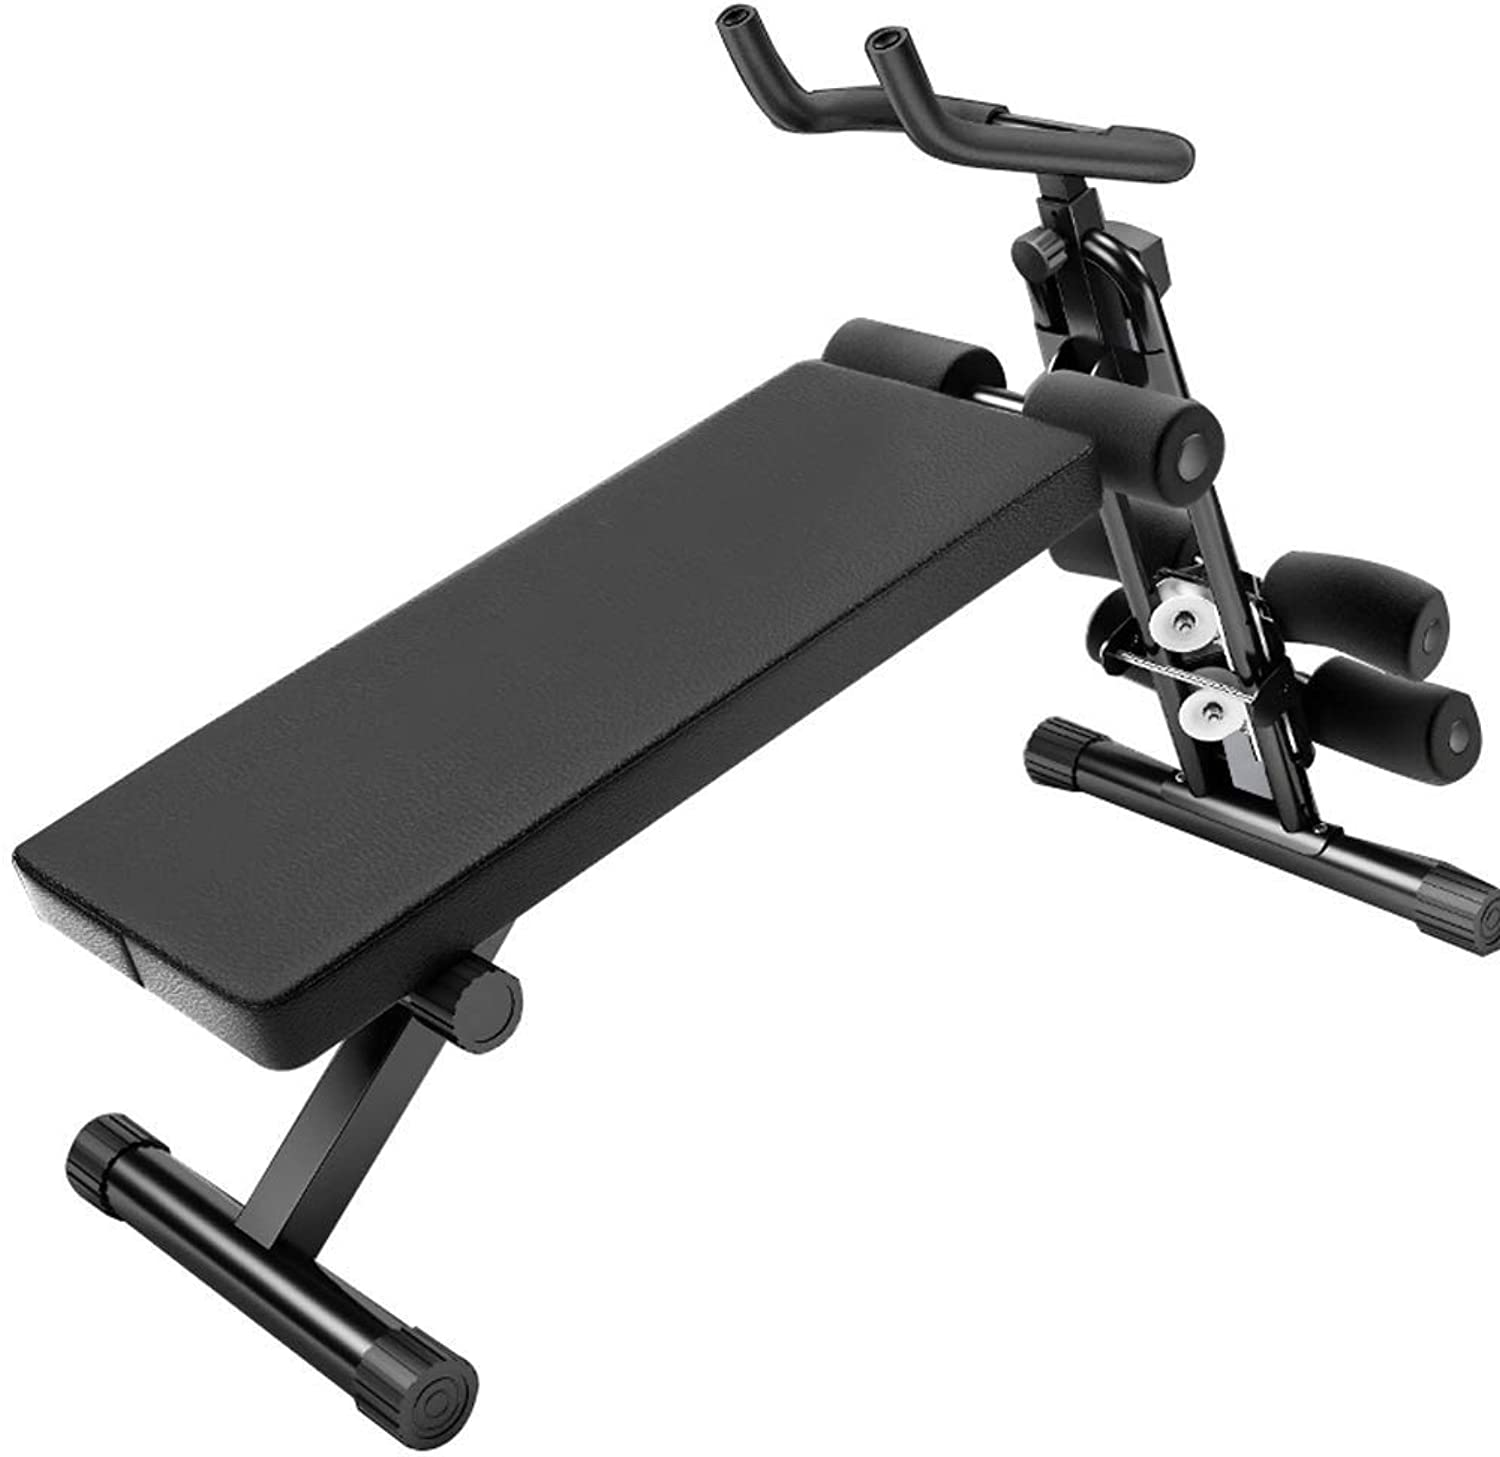 Breay1986 Adjustable Weight Bench, Home Training Gym situp Board Flat tilt Down MultiPurpose Exercise Bench